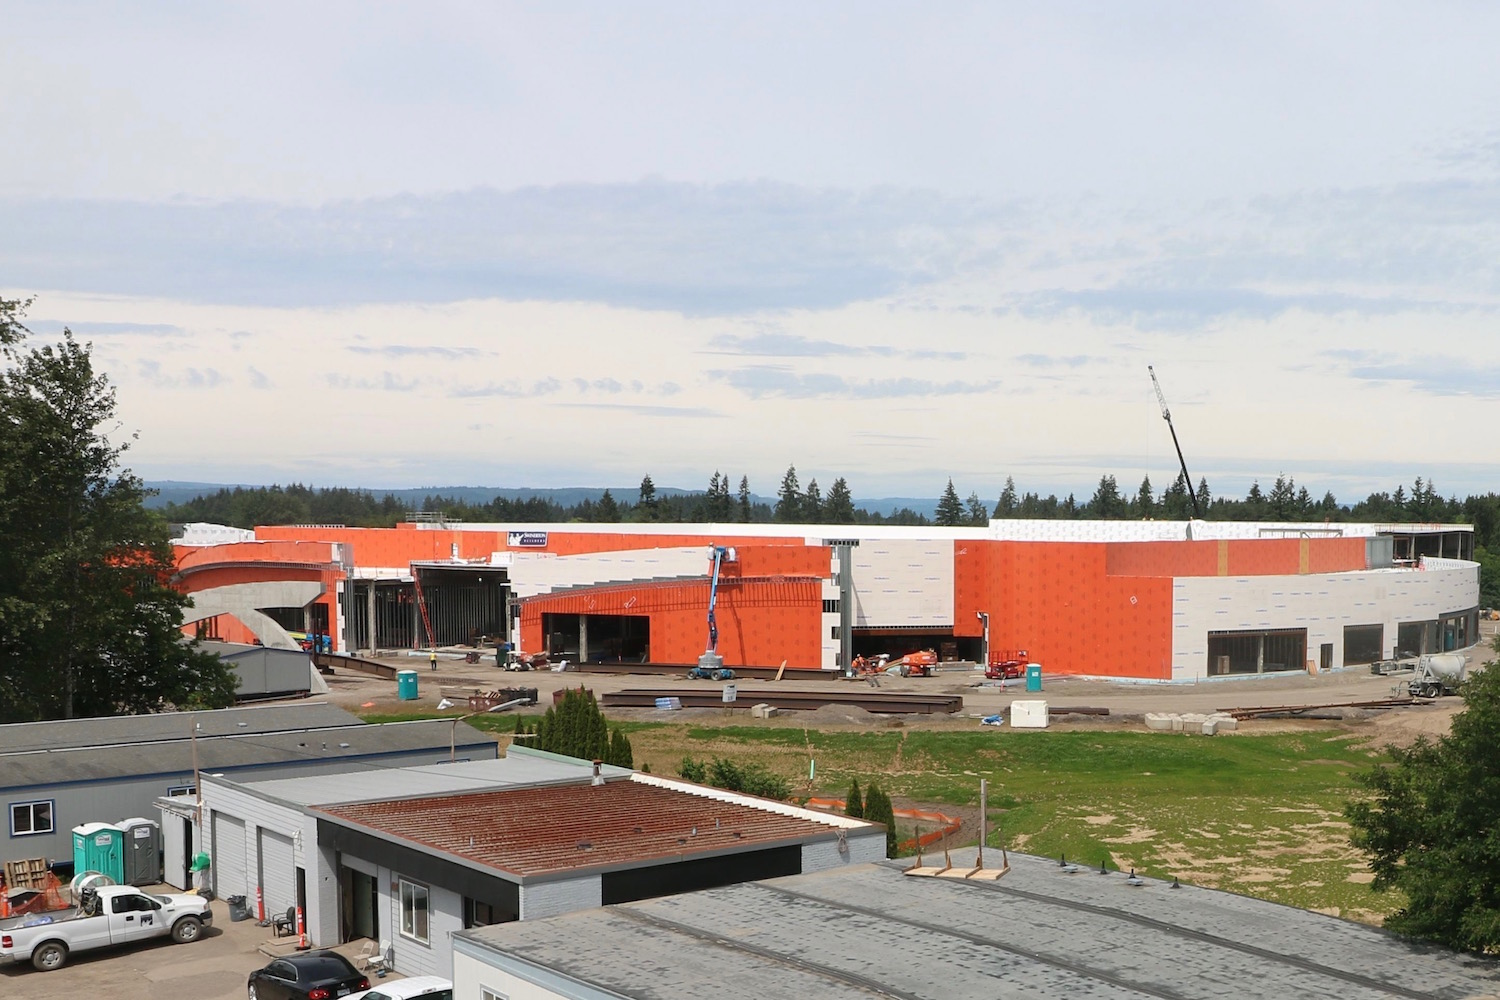 Cowlitz Tribe in discussions with county about stance on casino